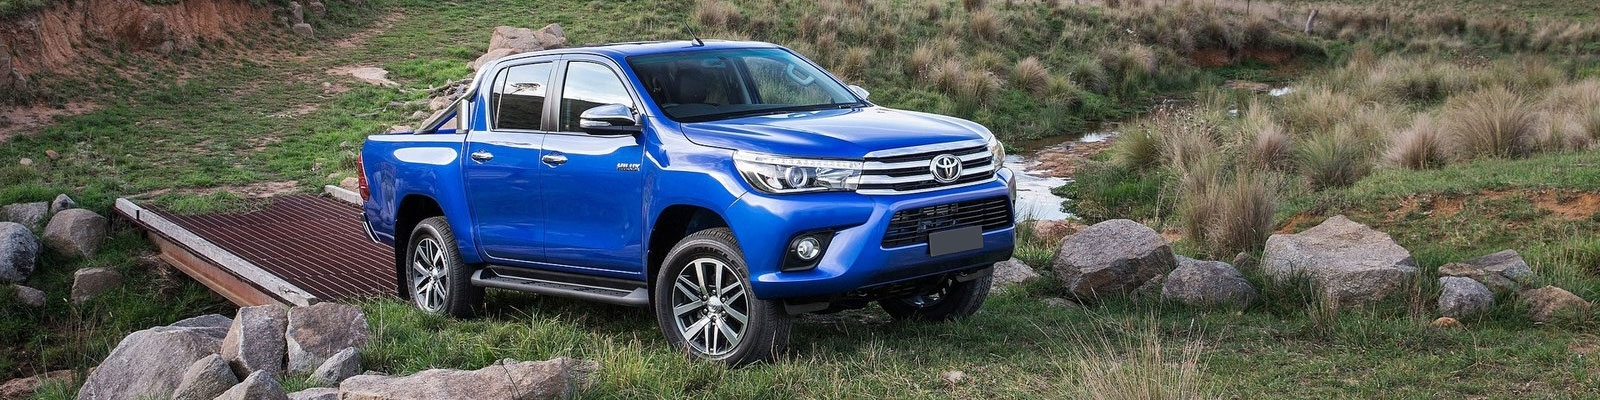 Accessories For Toyota Hilux Revo Double Cab 2016 onwards